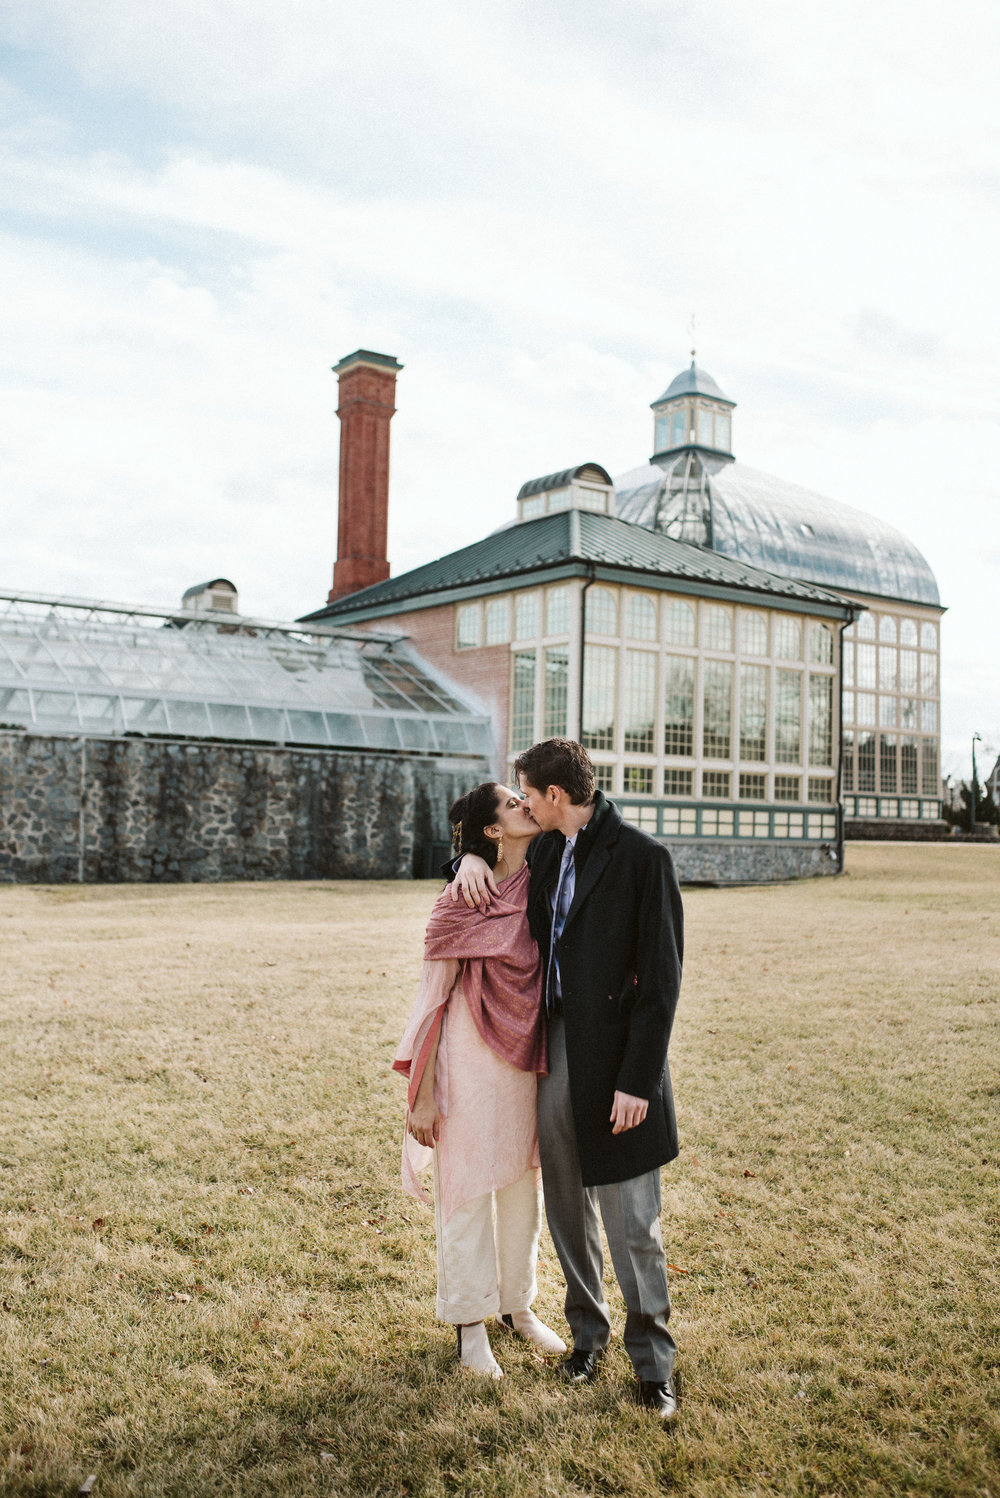 Elopement, Weekday Wedding, Towson, Rawlings Conservatory, Greenhouse, Maryland Wedding Photographer, Indian American, Outdoor, Nature, Romantic, Bride and Groom, Kiss